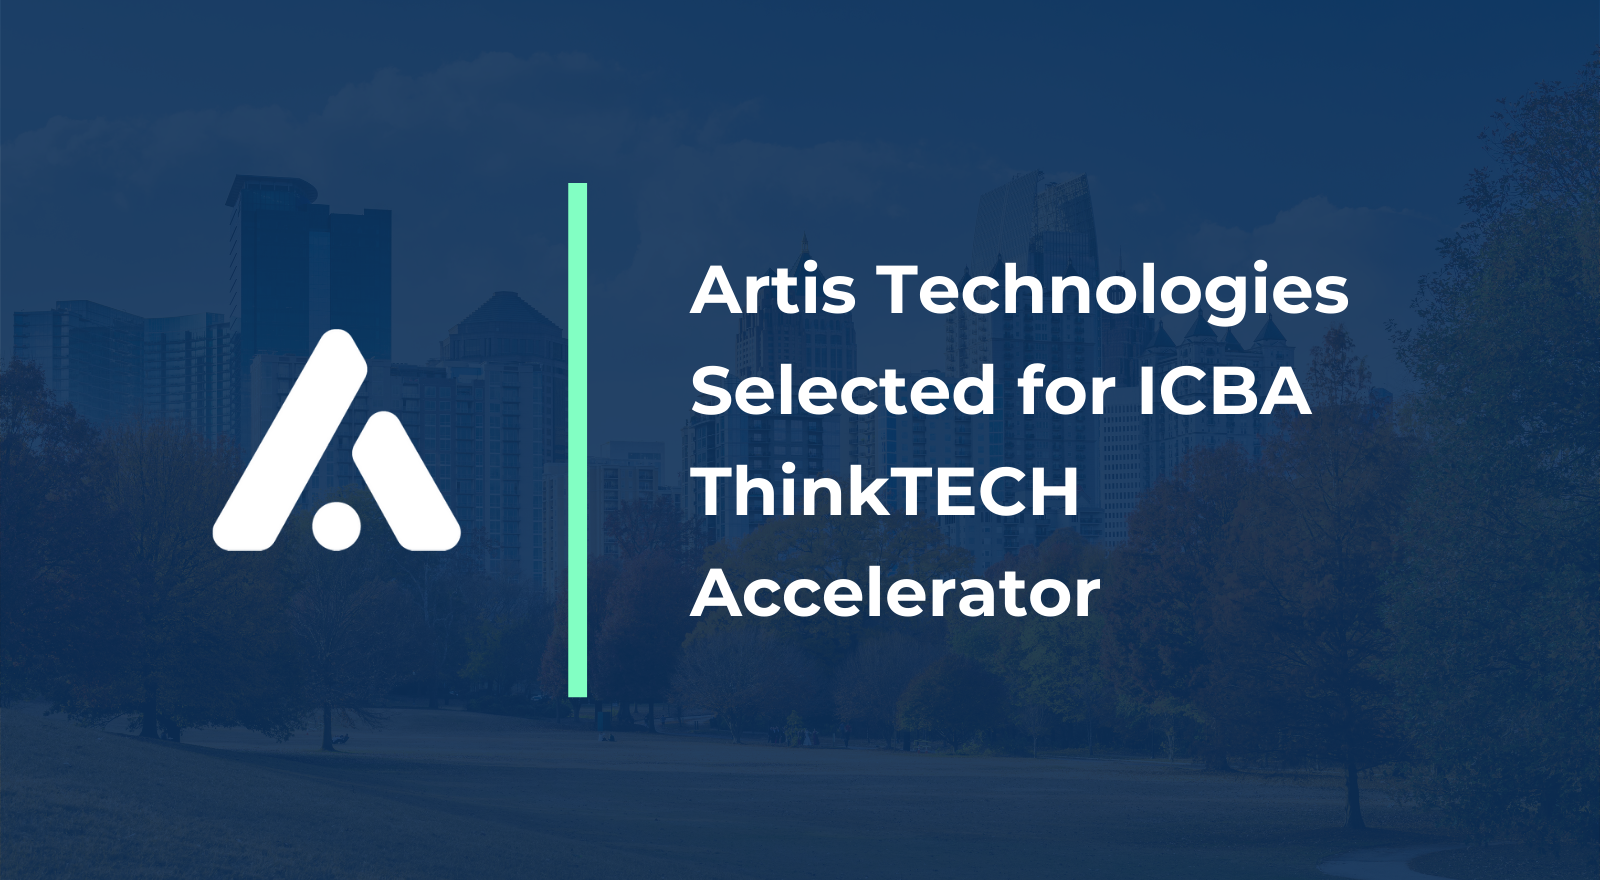 Artis Technologies Selected for ICBA ThinkTECH Accelerator